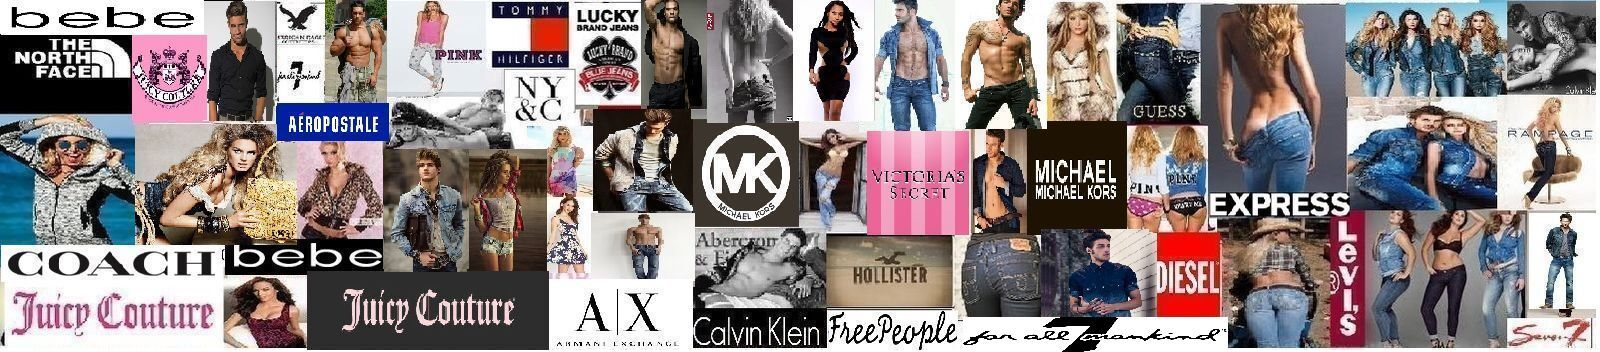 GLAMGIRLS WOMEN&MEN DESIGNER DEALS